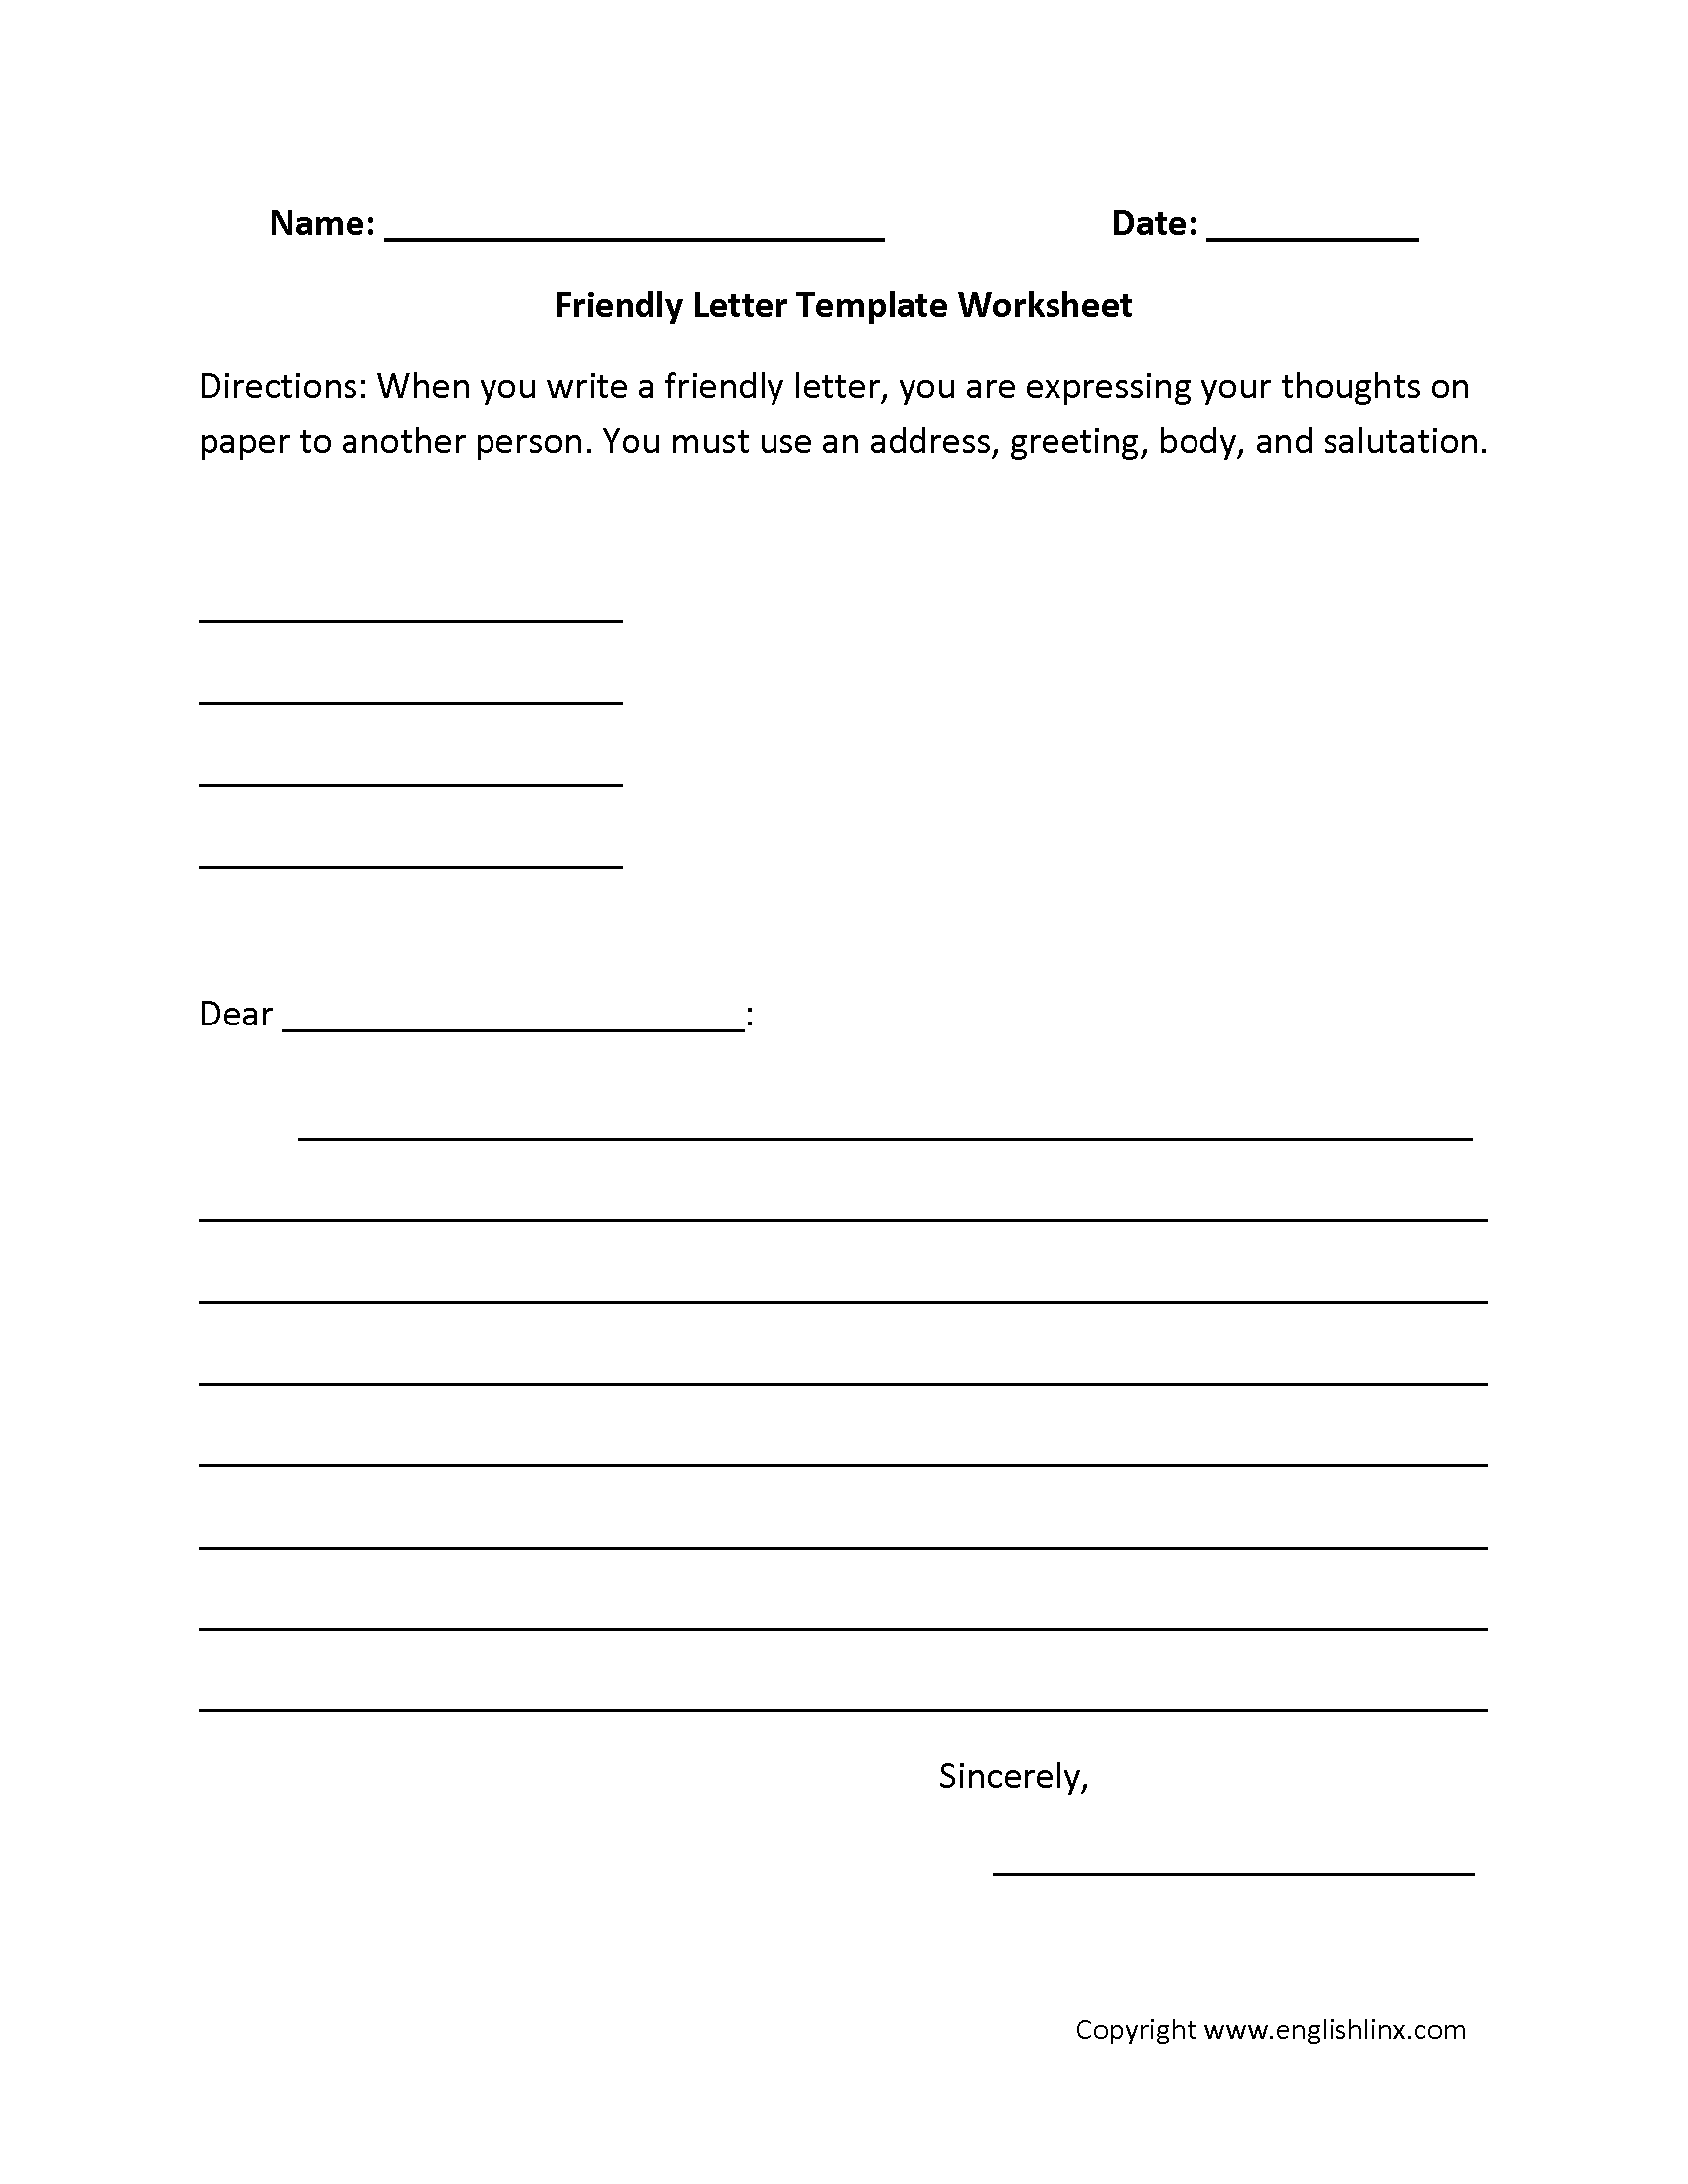 Friendly Letter Writing Worksheets  Letter Writing Template